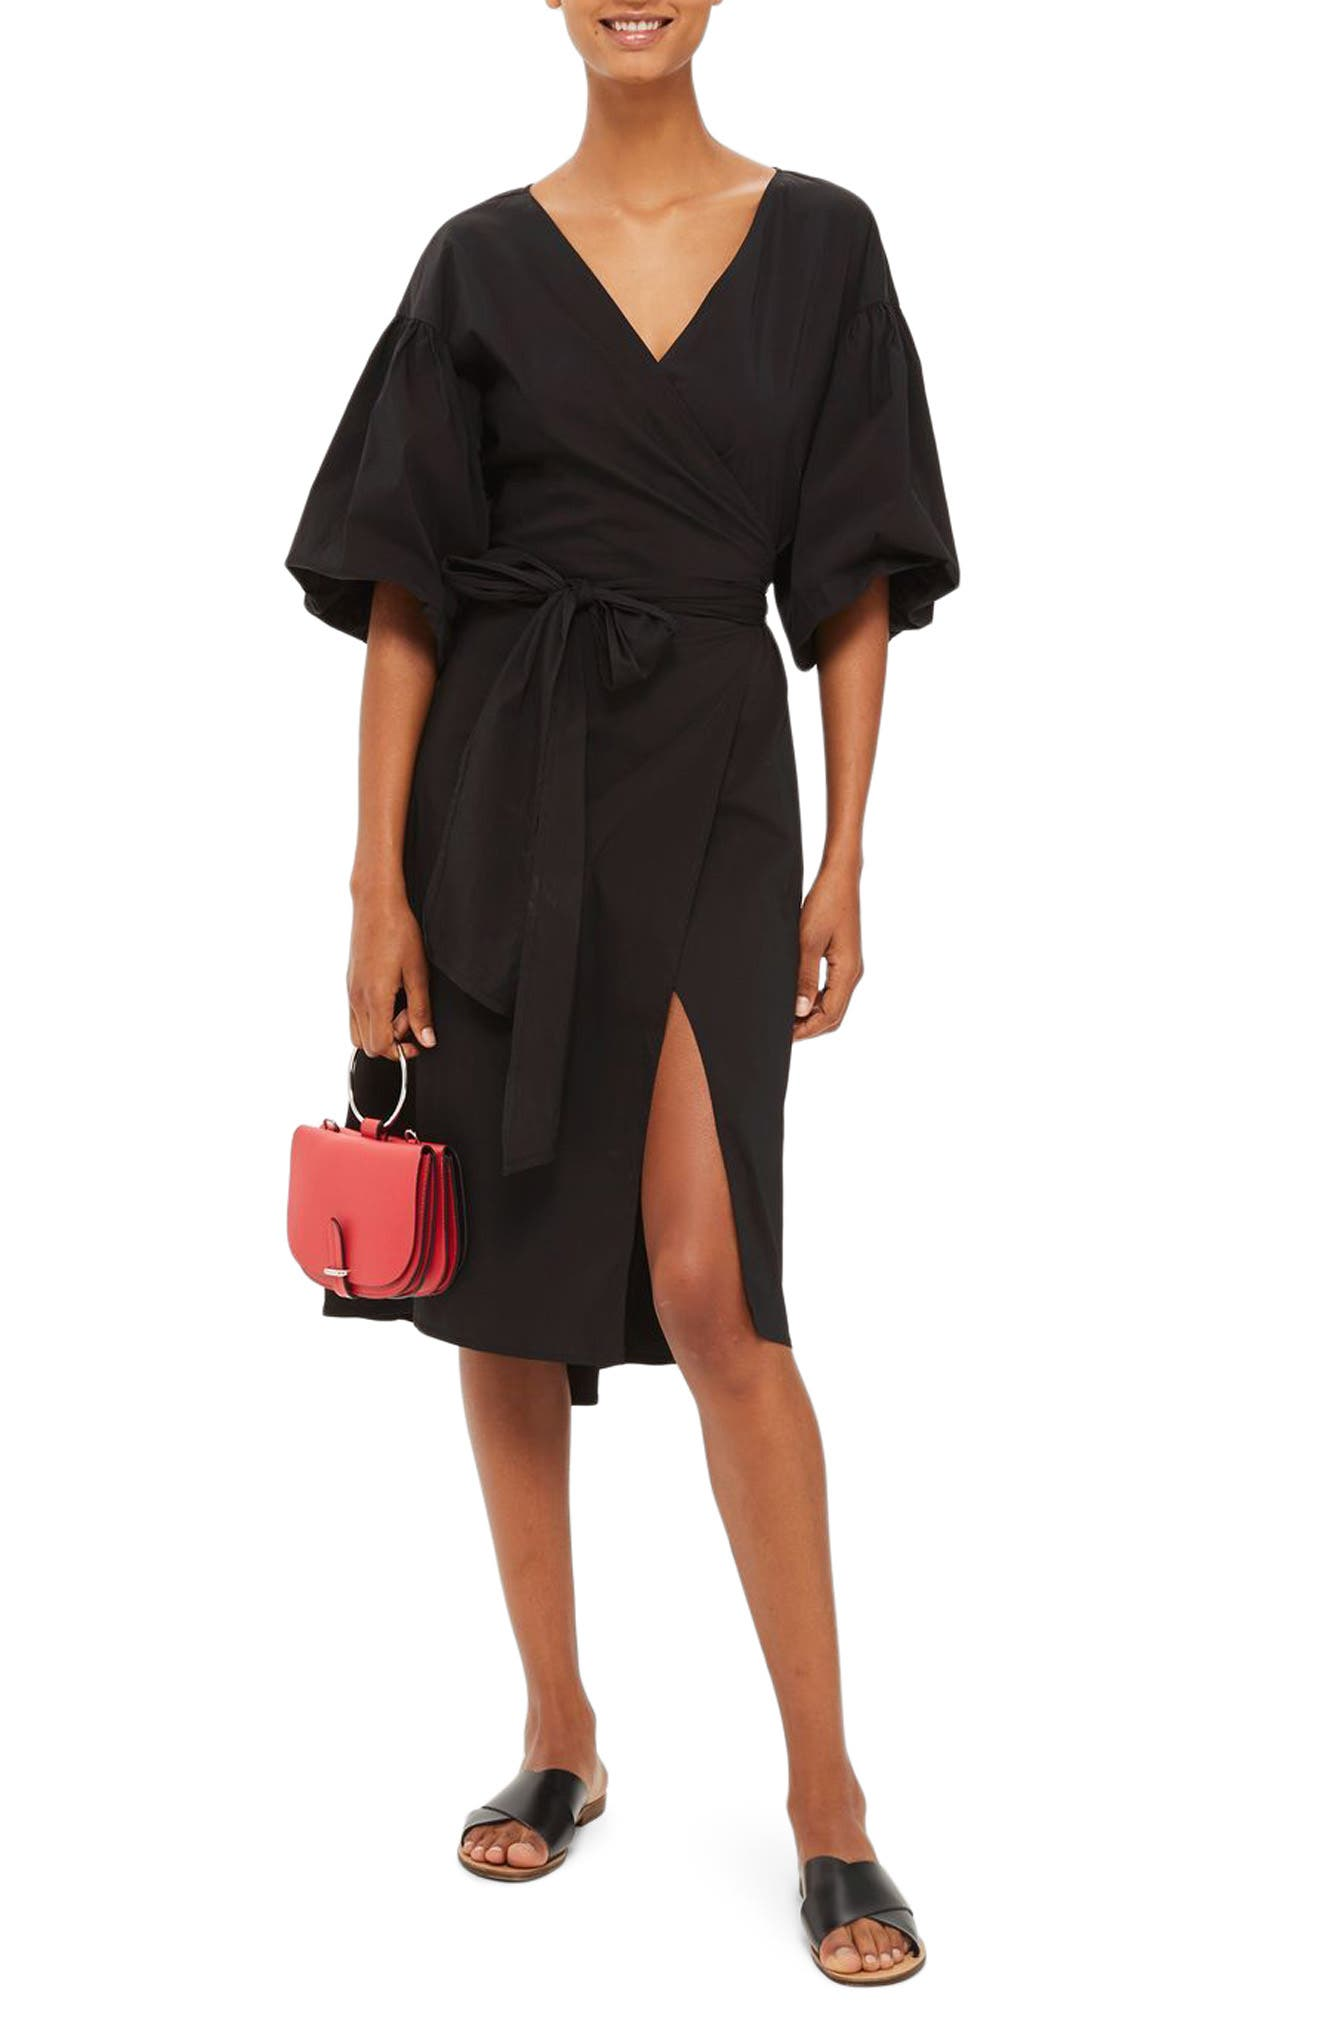 Topshop Balloon Sleeve Wrap Dress